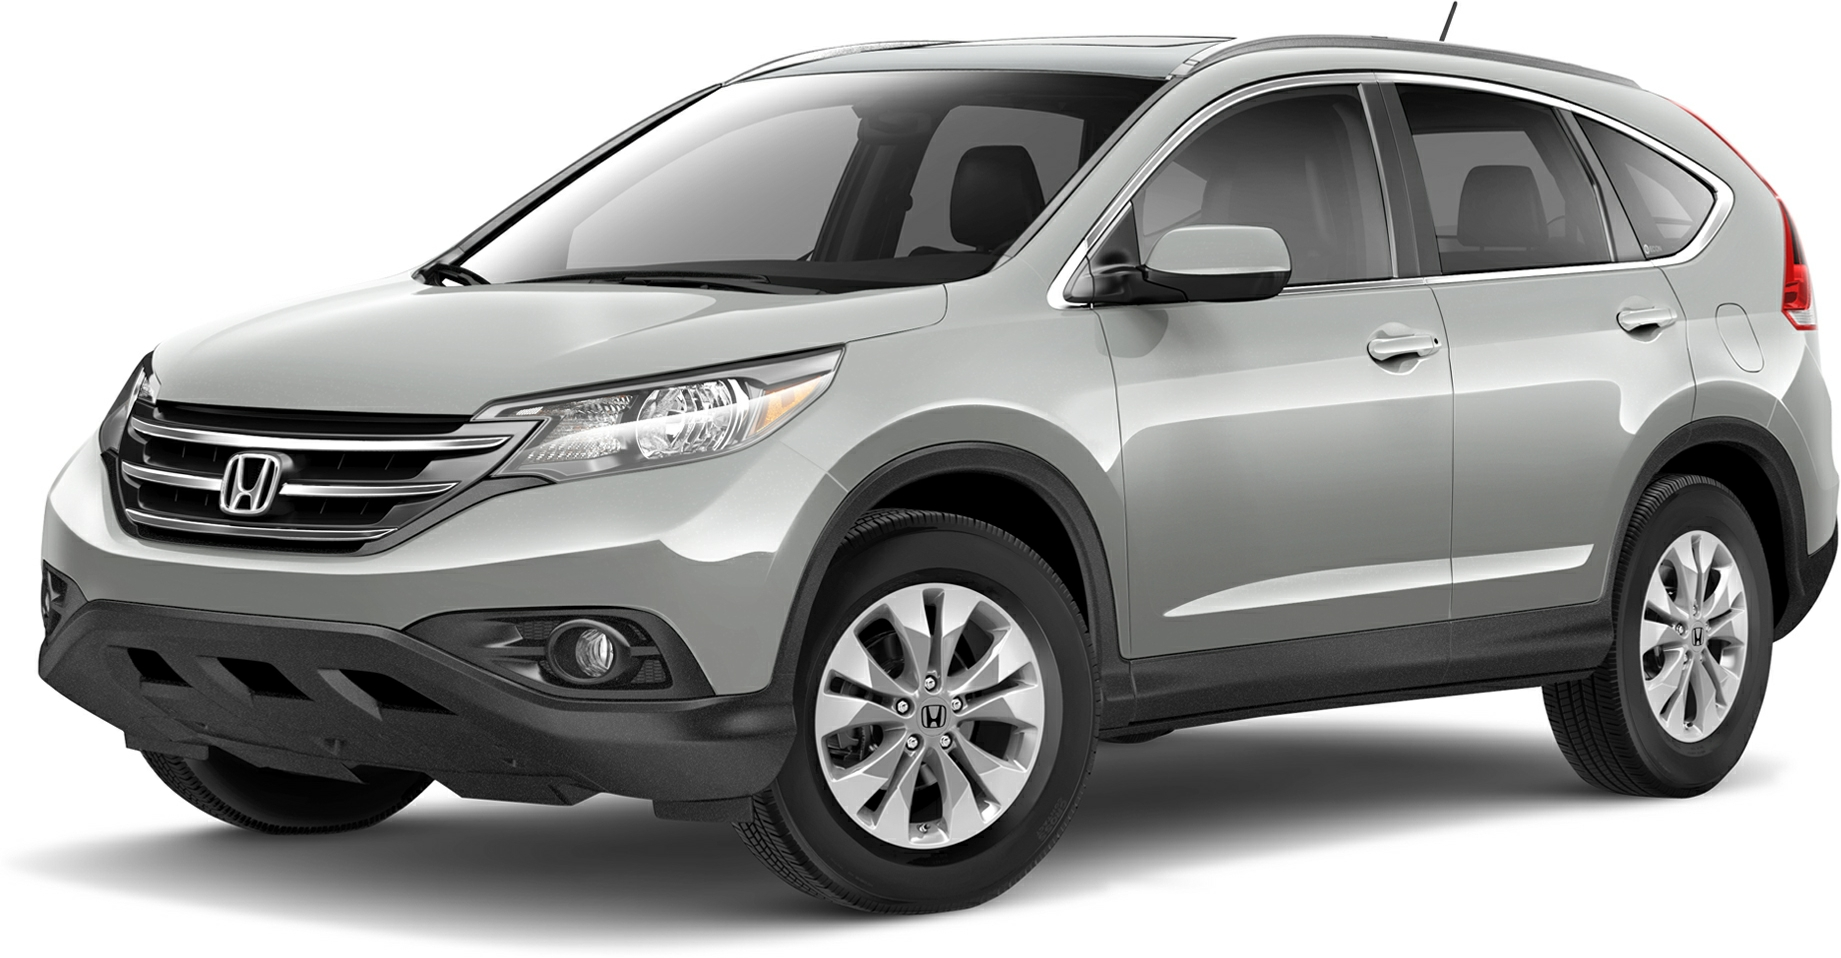 Pre Owned Cars Bay Shore New York Atlantic Honda Online Store 2009 Crv Tailgate Parts